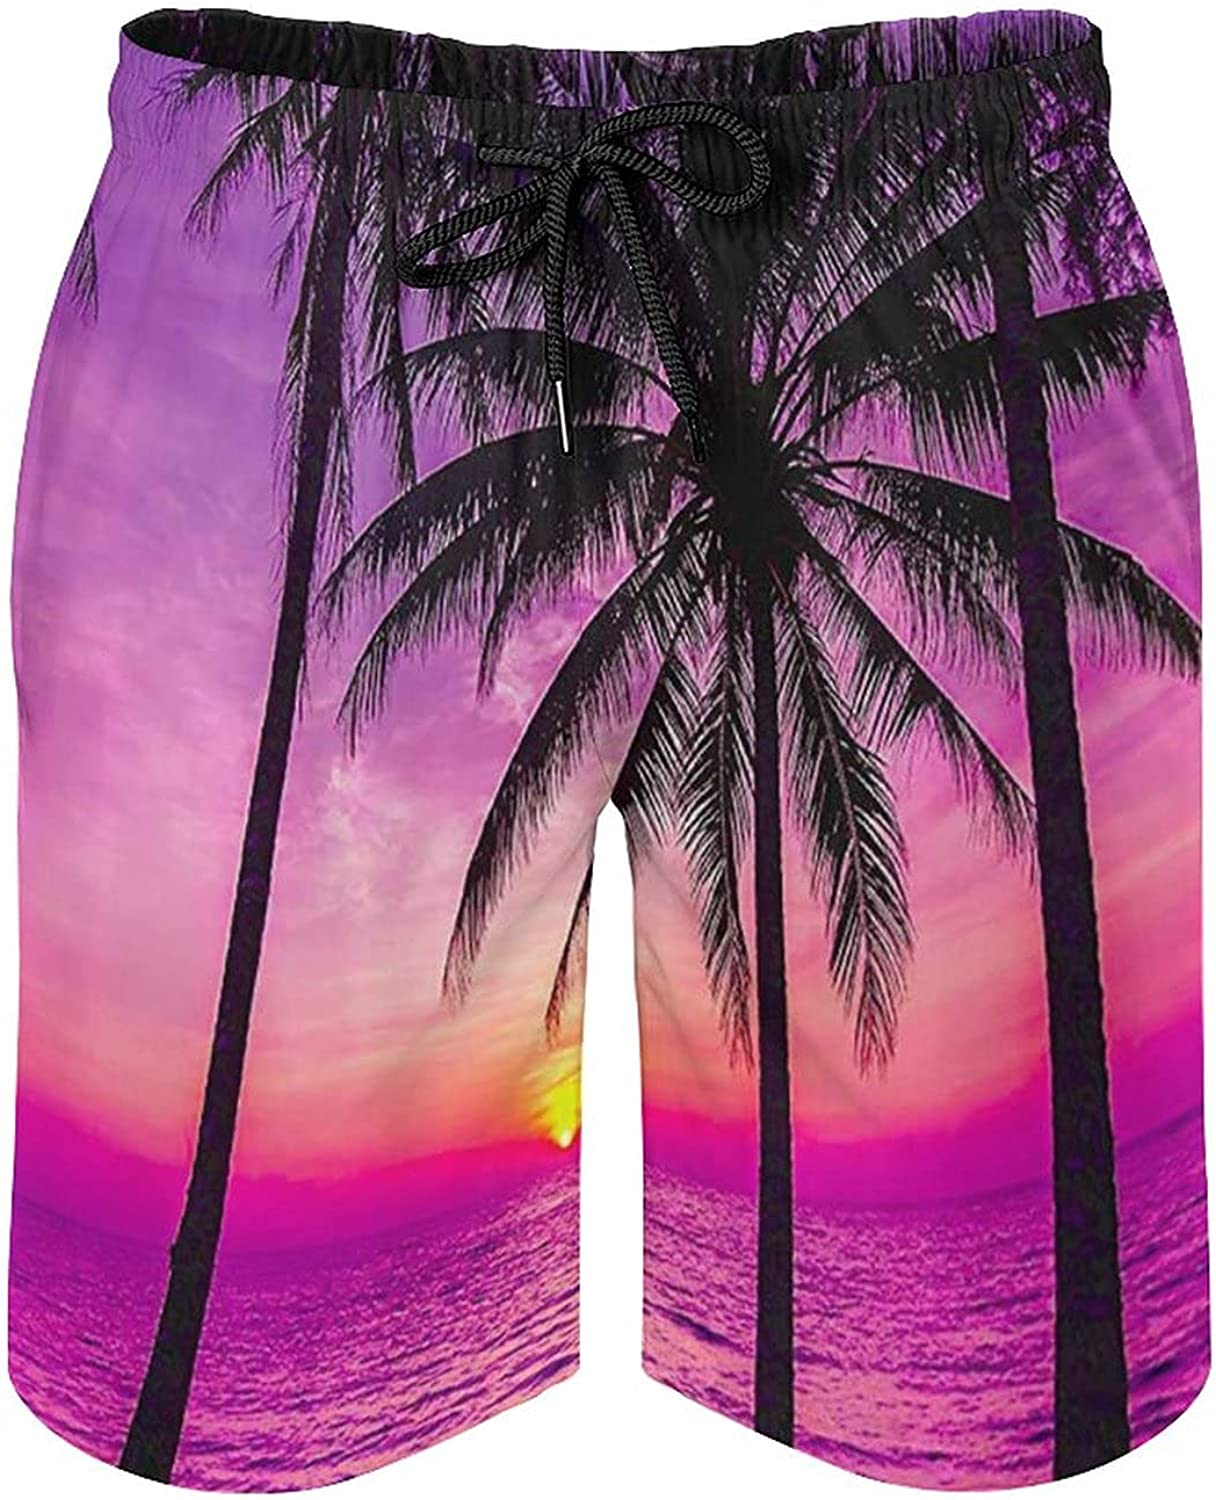 DQRIFGL Summer Beach Shorts Swim Trunks Quick Dry Surfing Bathing Suits Board Shorts with Mesh Lining